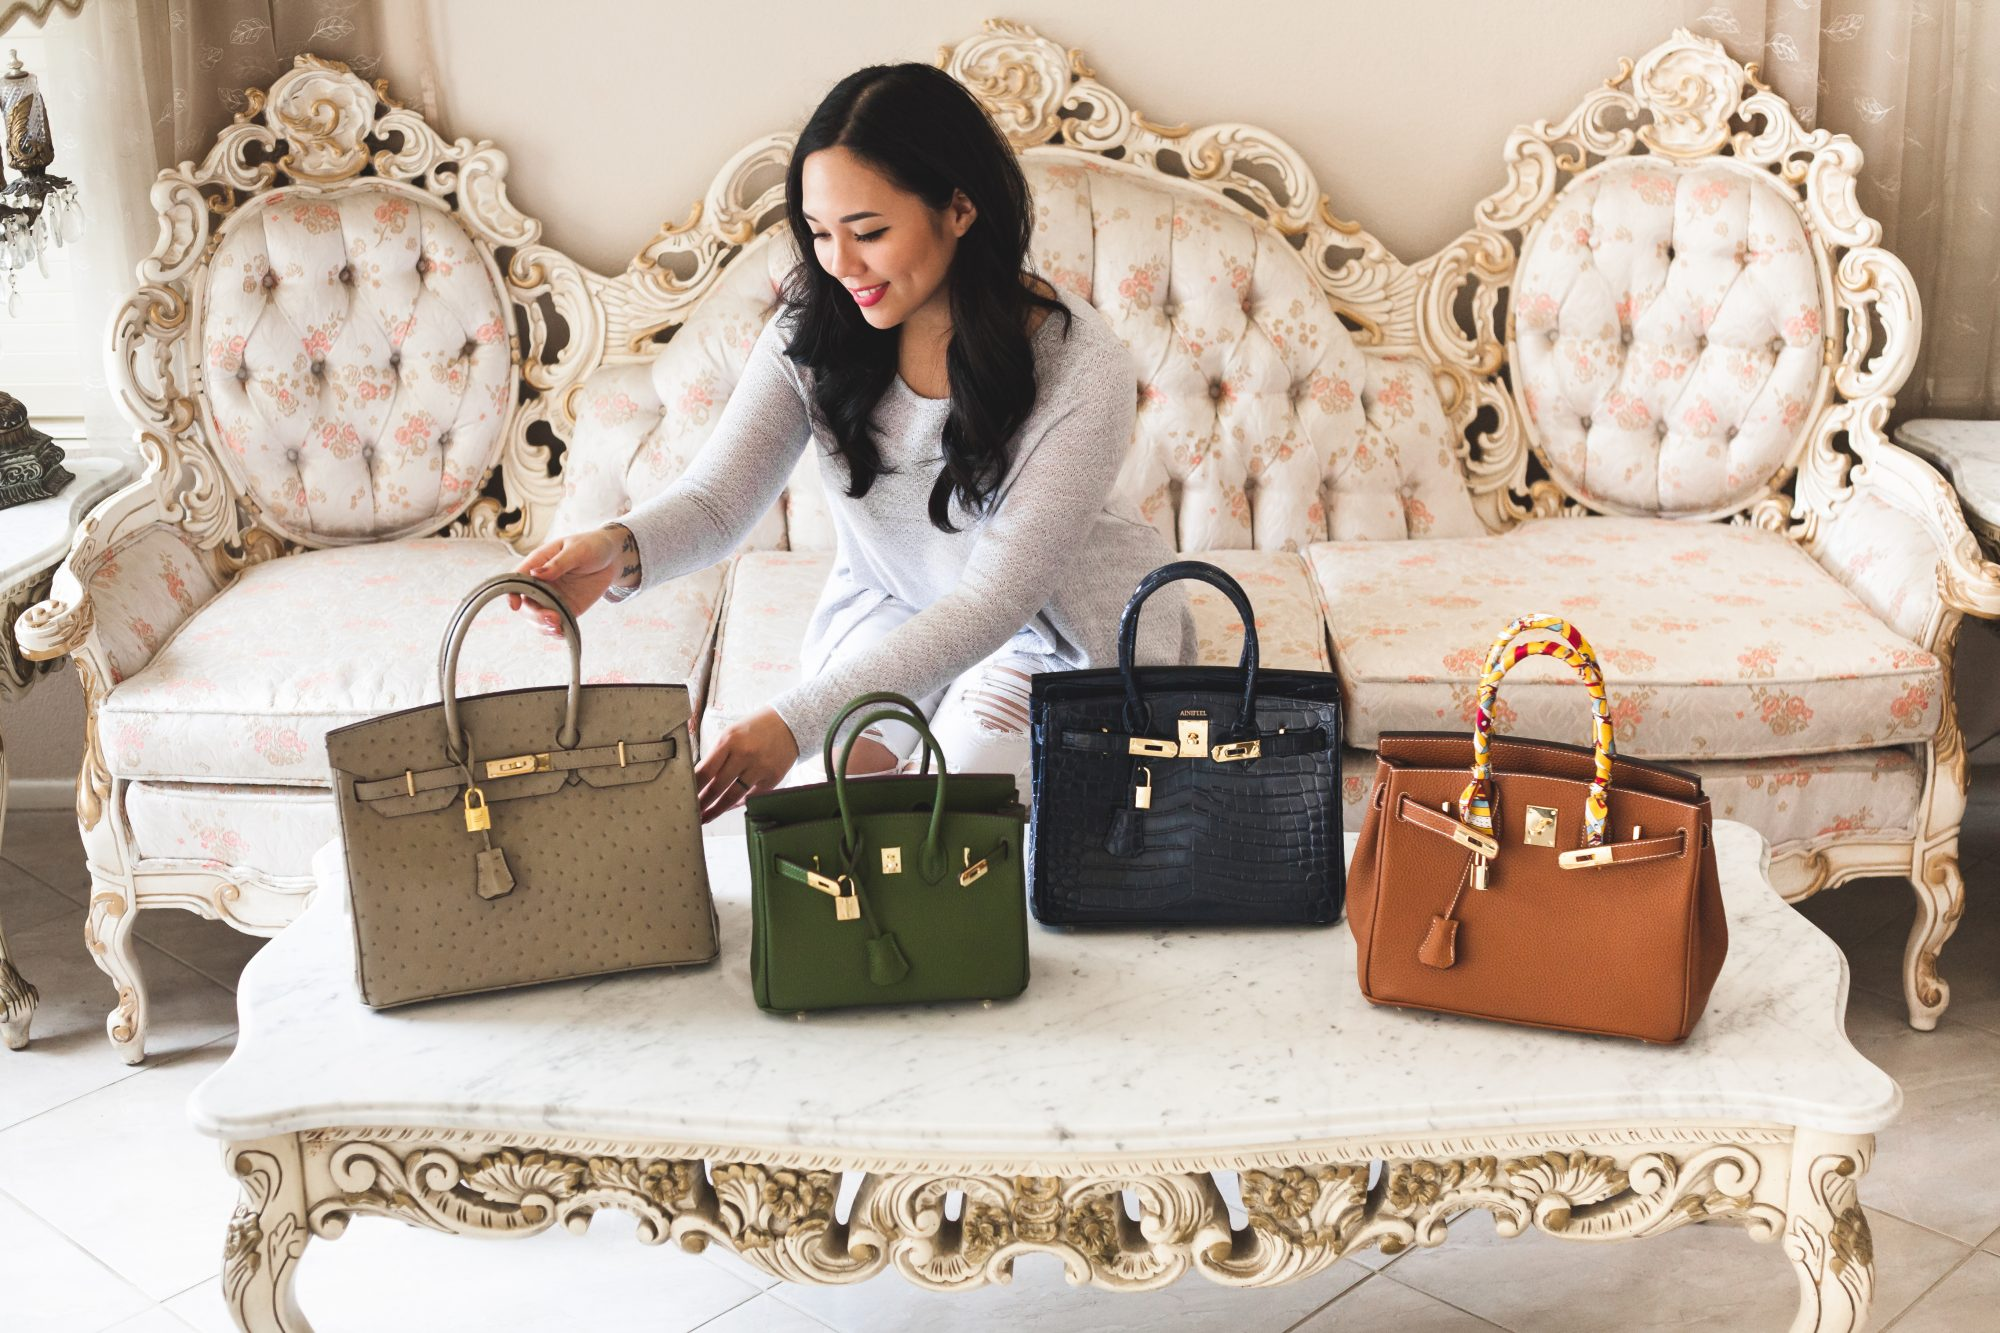 ab4f8d3bdfb4 Fan of the expensive Hermés Birkin  Here are 4 gorgeous and high-quality  designer ...